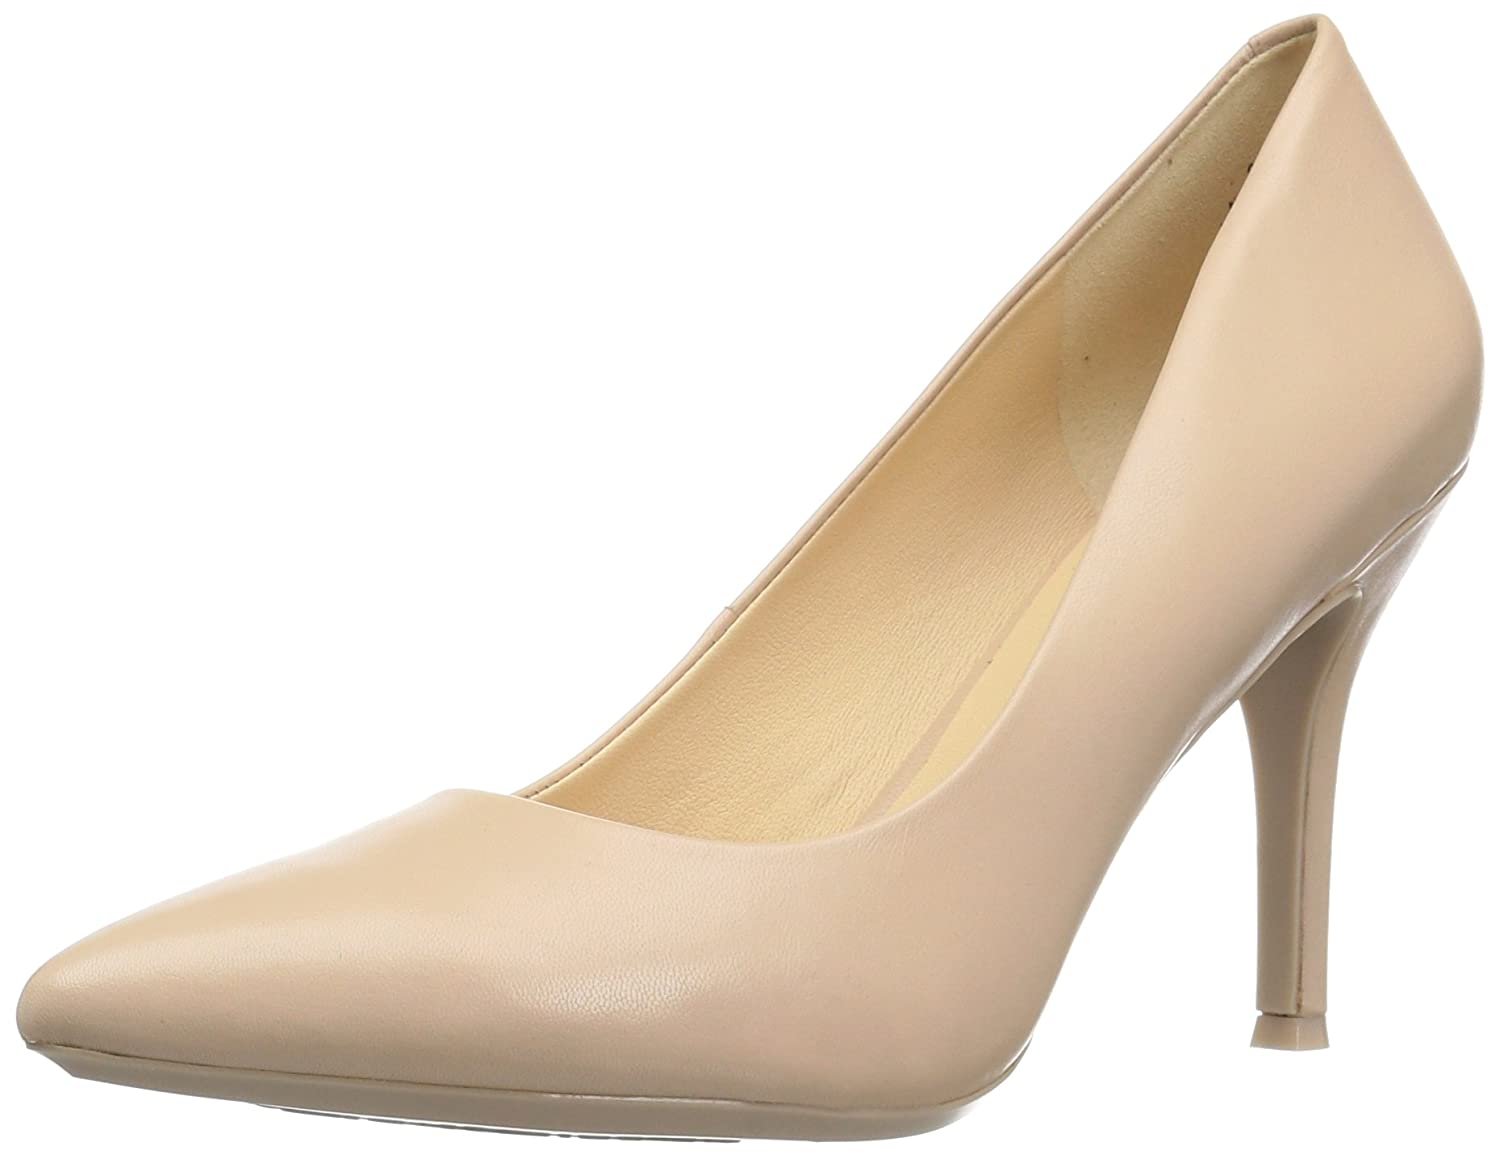 Nine West Women's FIFTH9X Fifth Pointy Toe Pumps B01MXTOIAL 8.5 B(M) US|Light Natural Leather